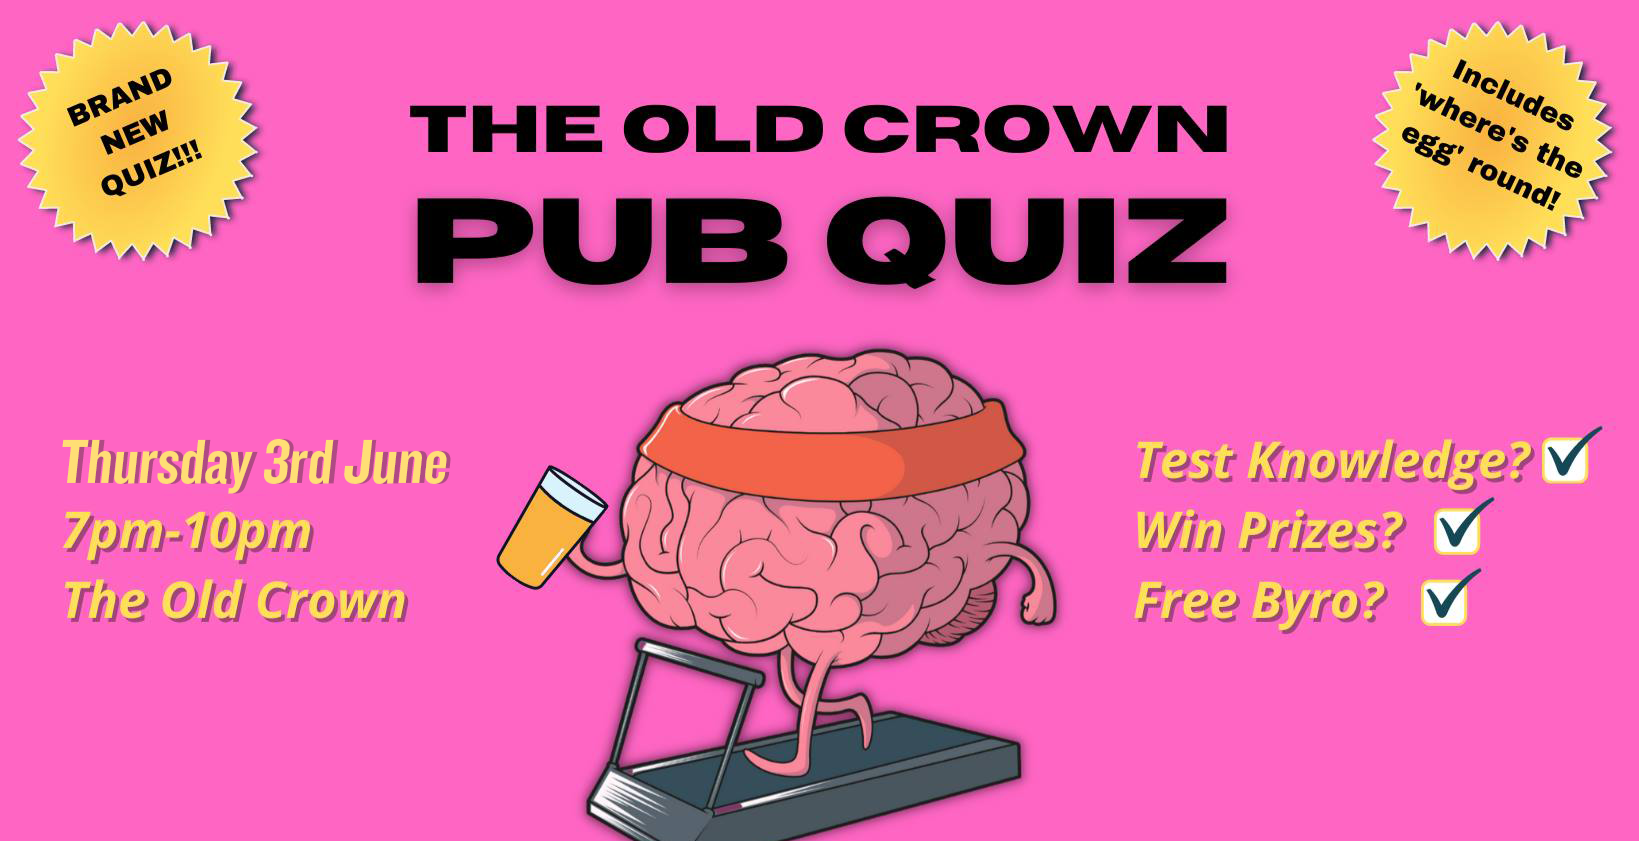 The Old Crown Pub Quiz